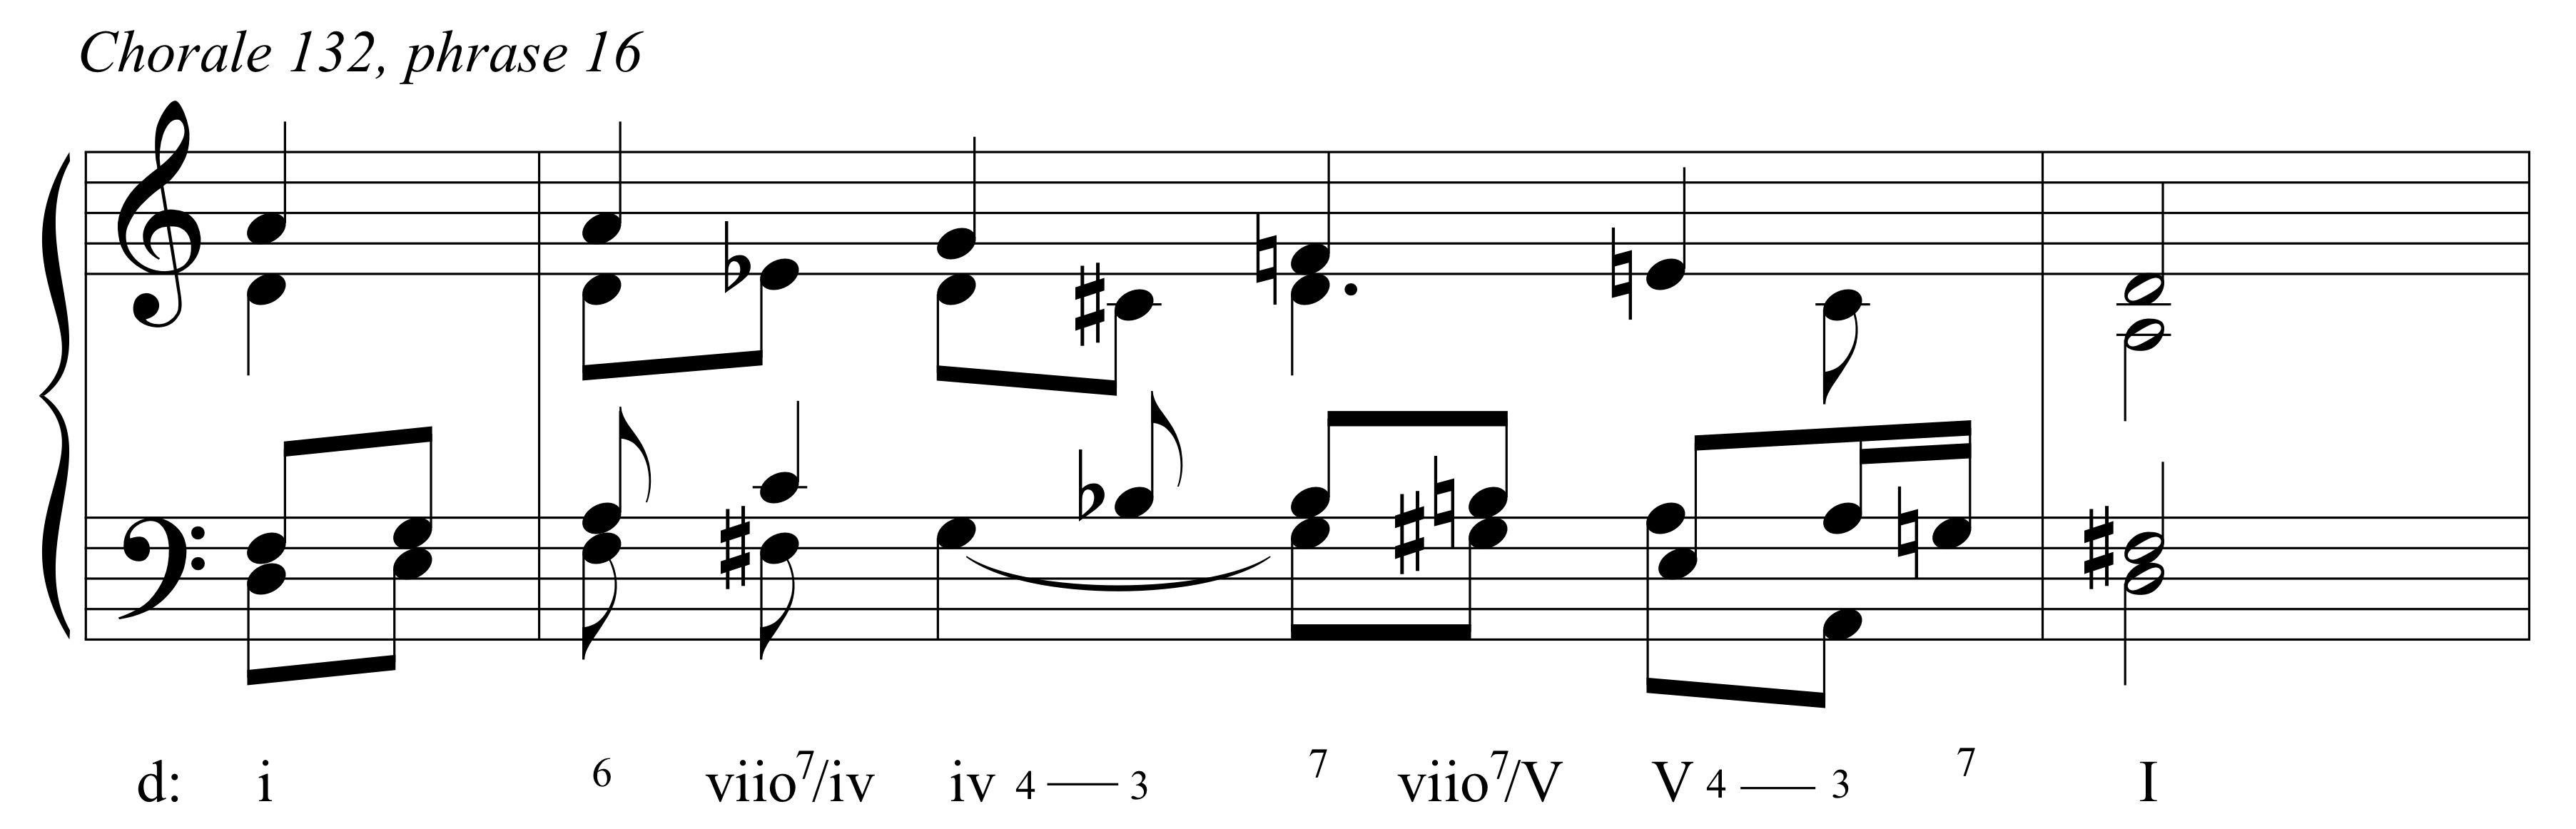 Bachs 12 tone chorale phrases for m is musick aside hexwebz Choice Image